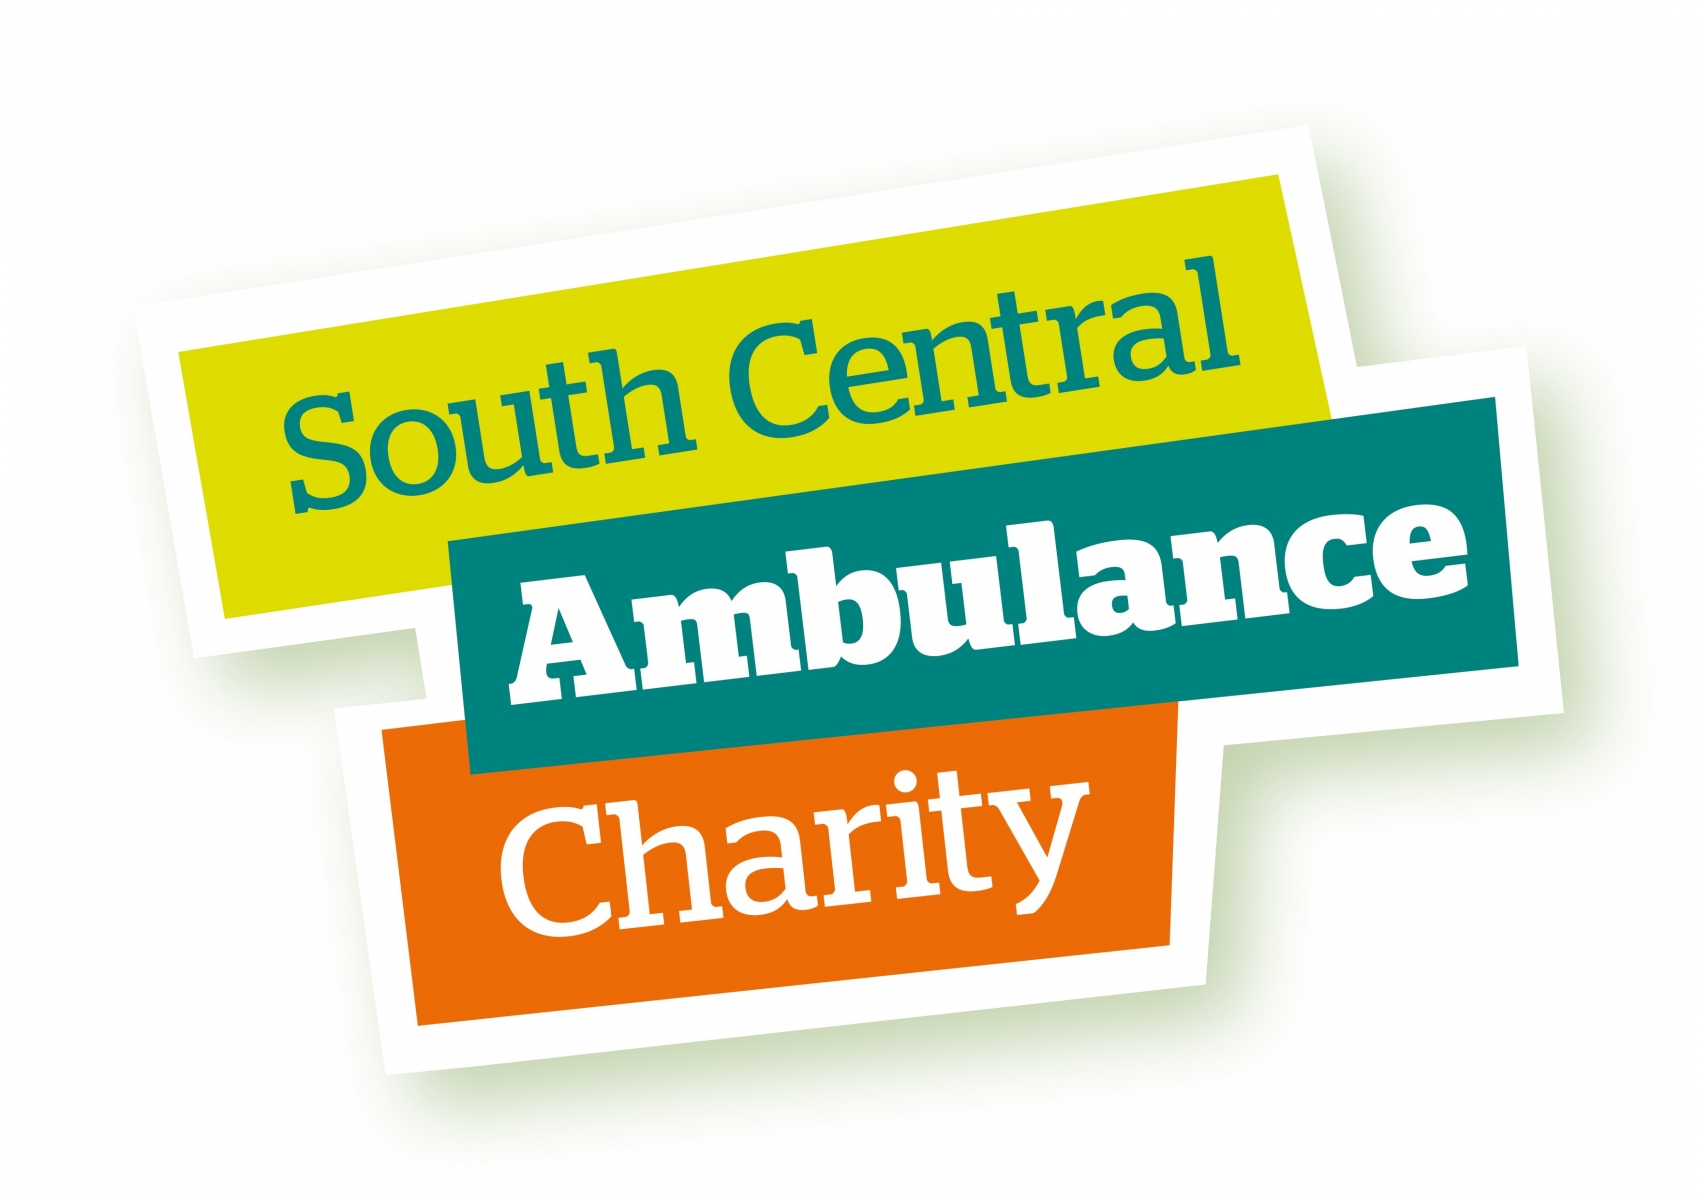 South Central Ambulance Charity eCards